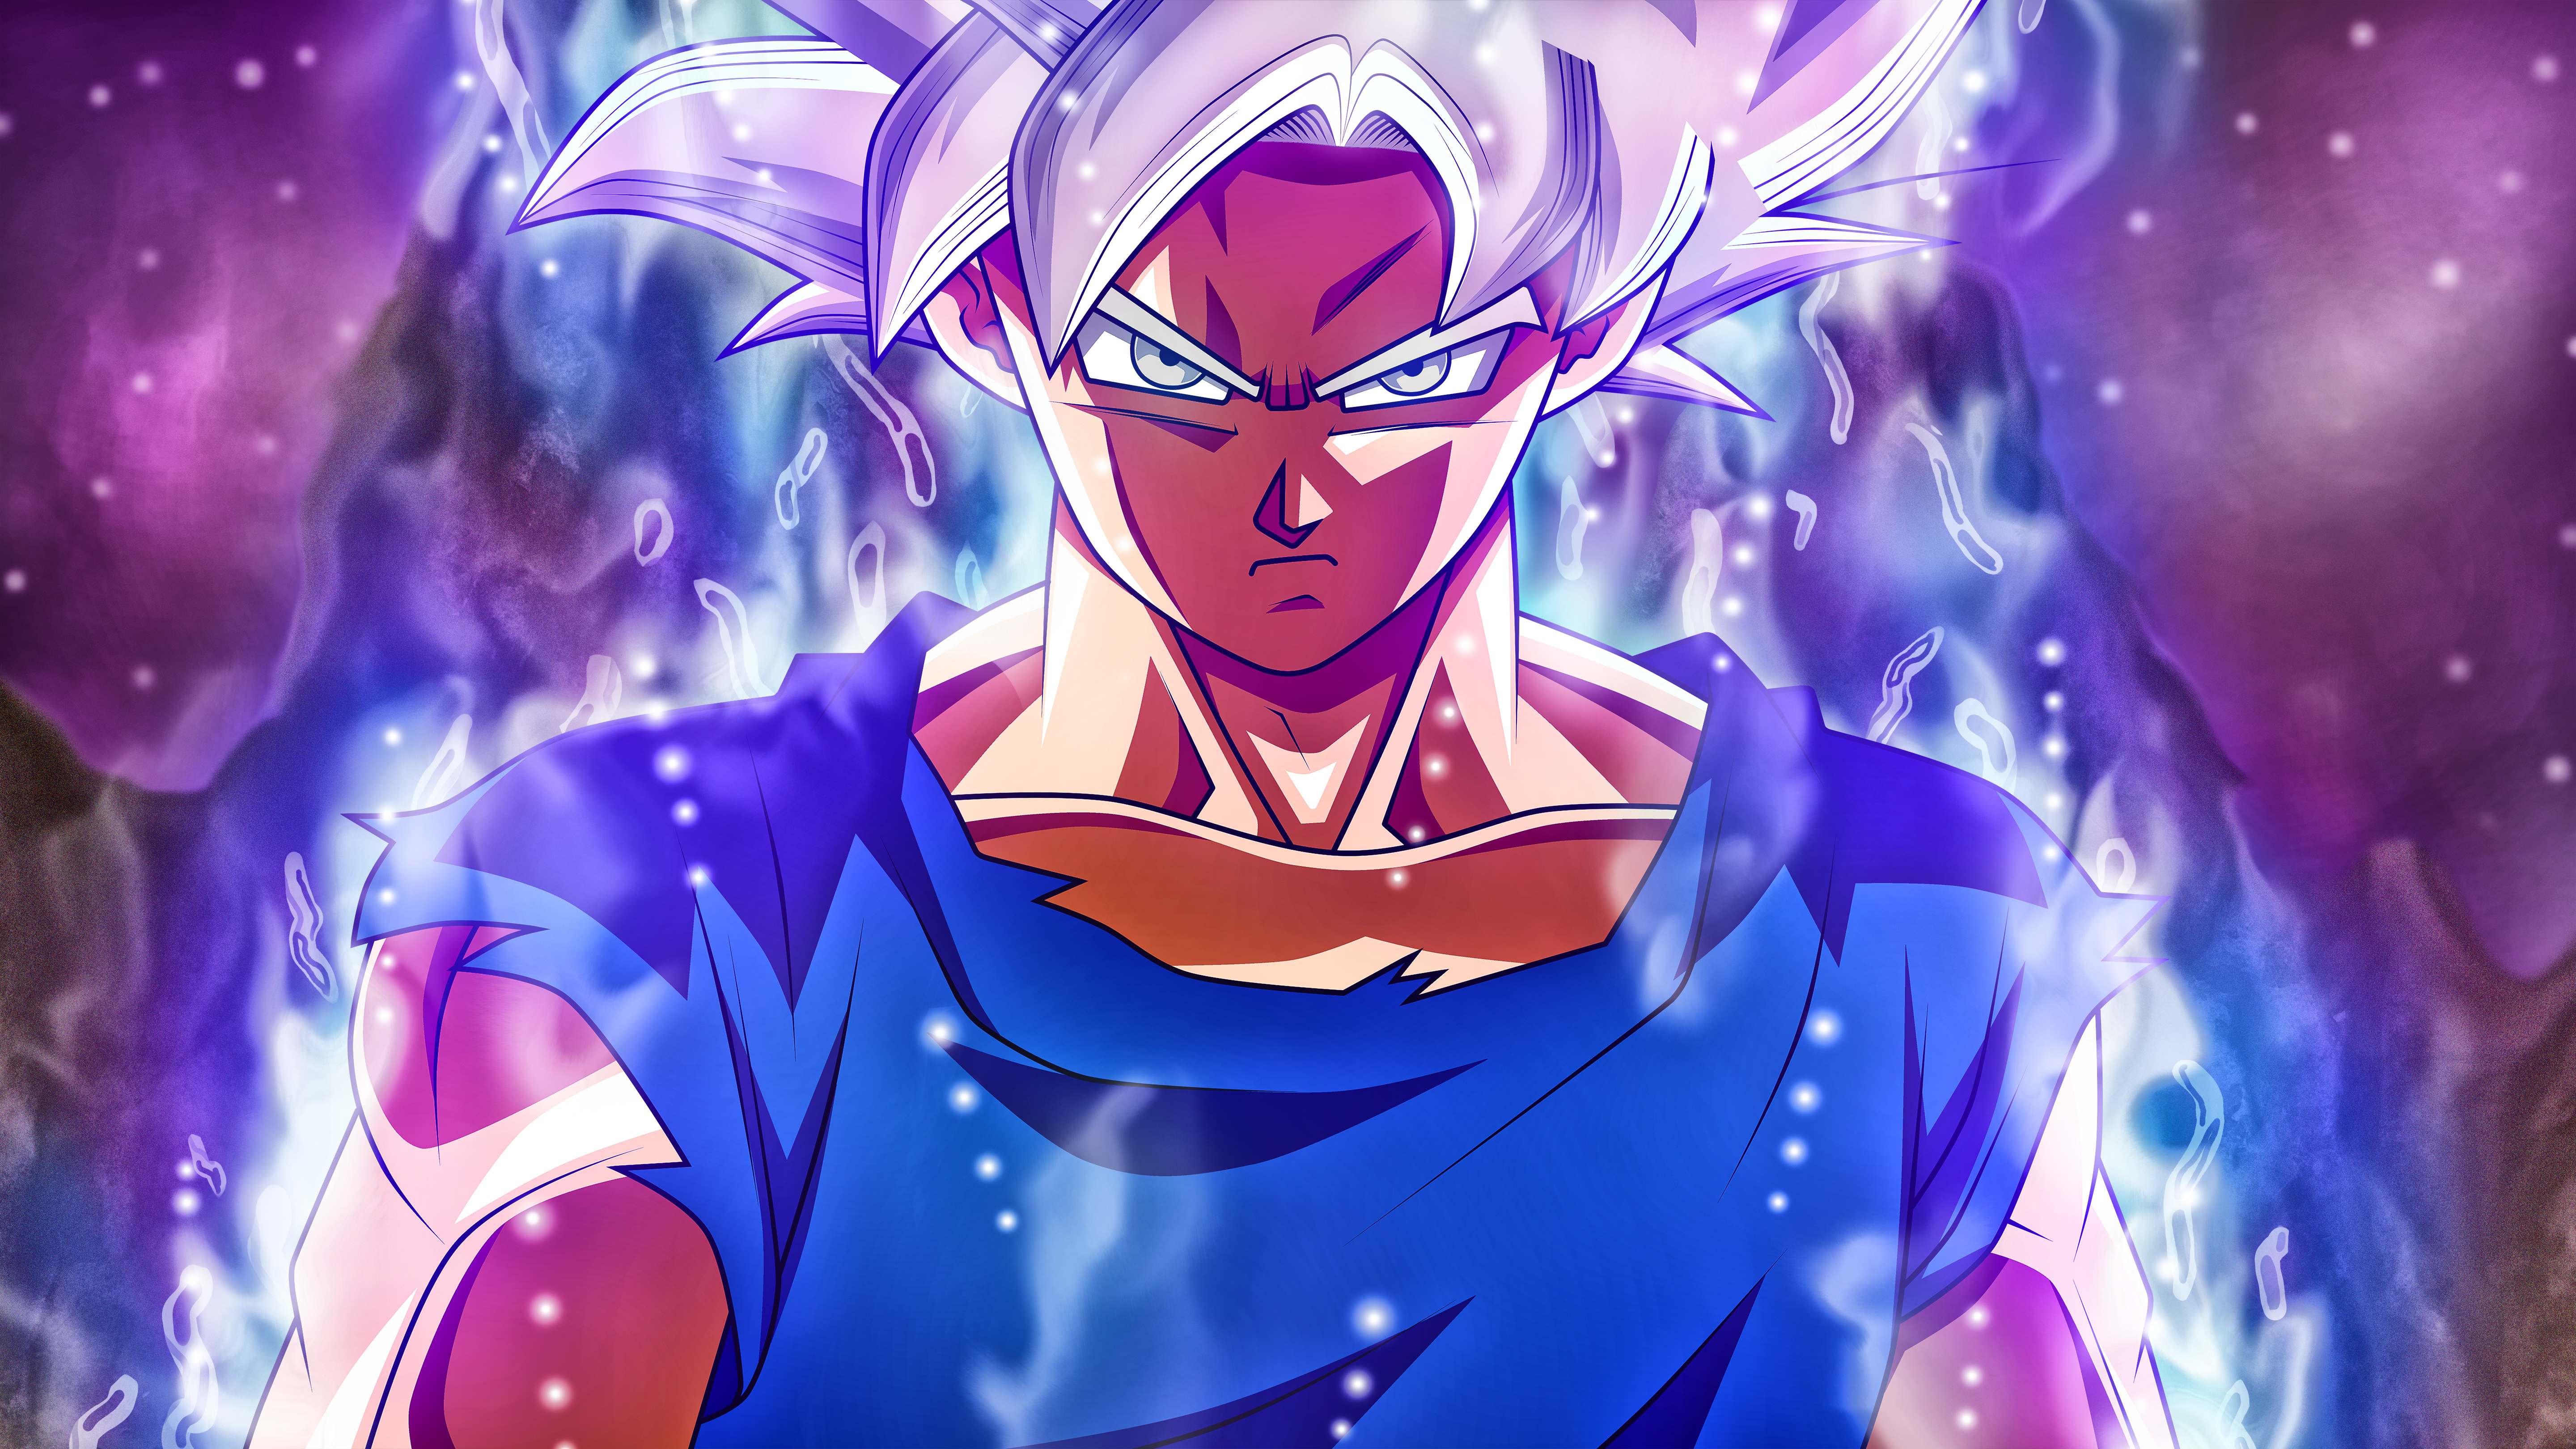 Goku 1920x1080 Wallpaper Posted By Ethan Tremblay